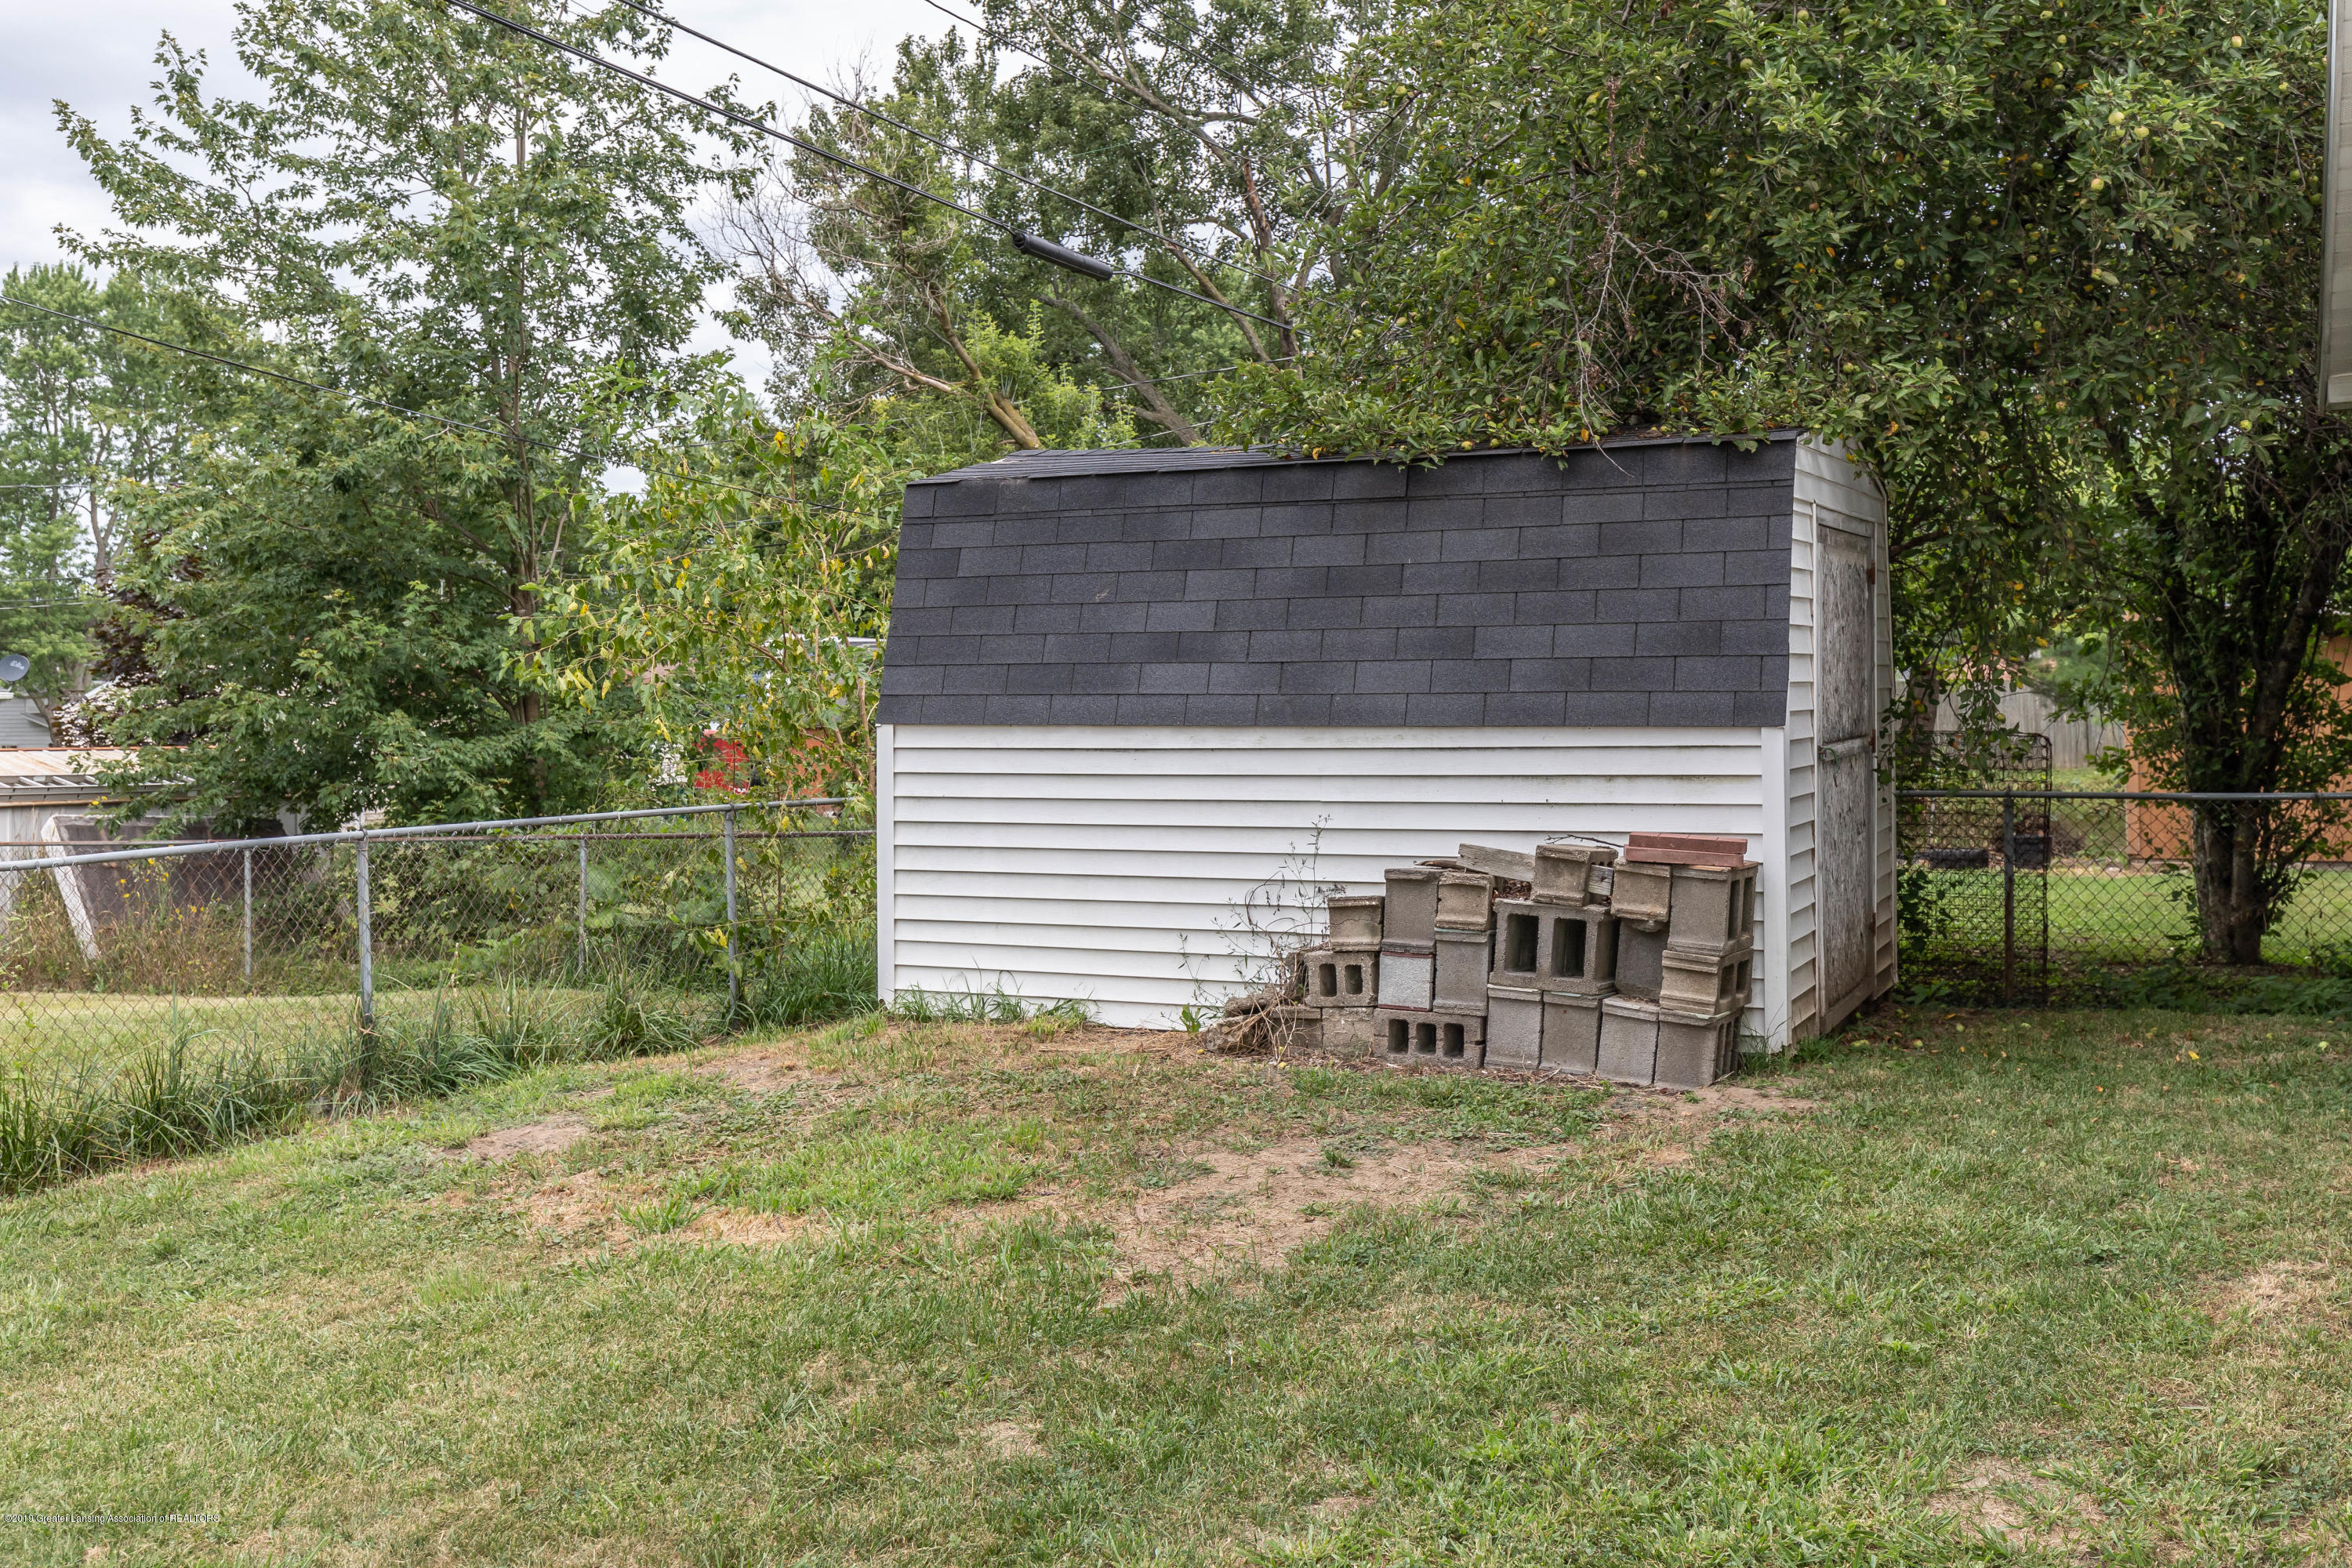 6230 Grovenburg Rd - grovenburgback3 (1 of 1) - 6